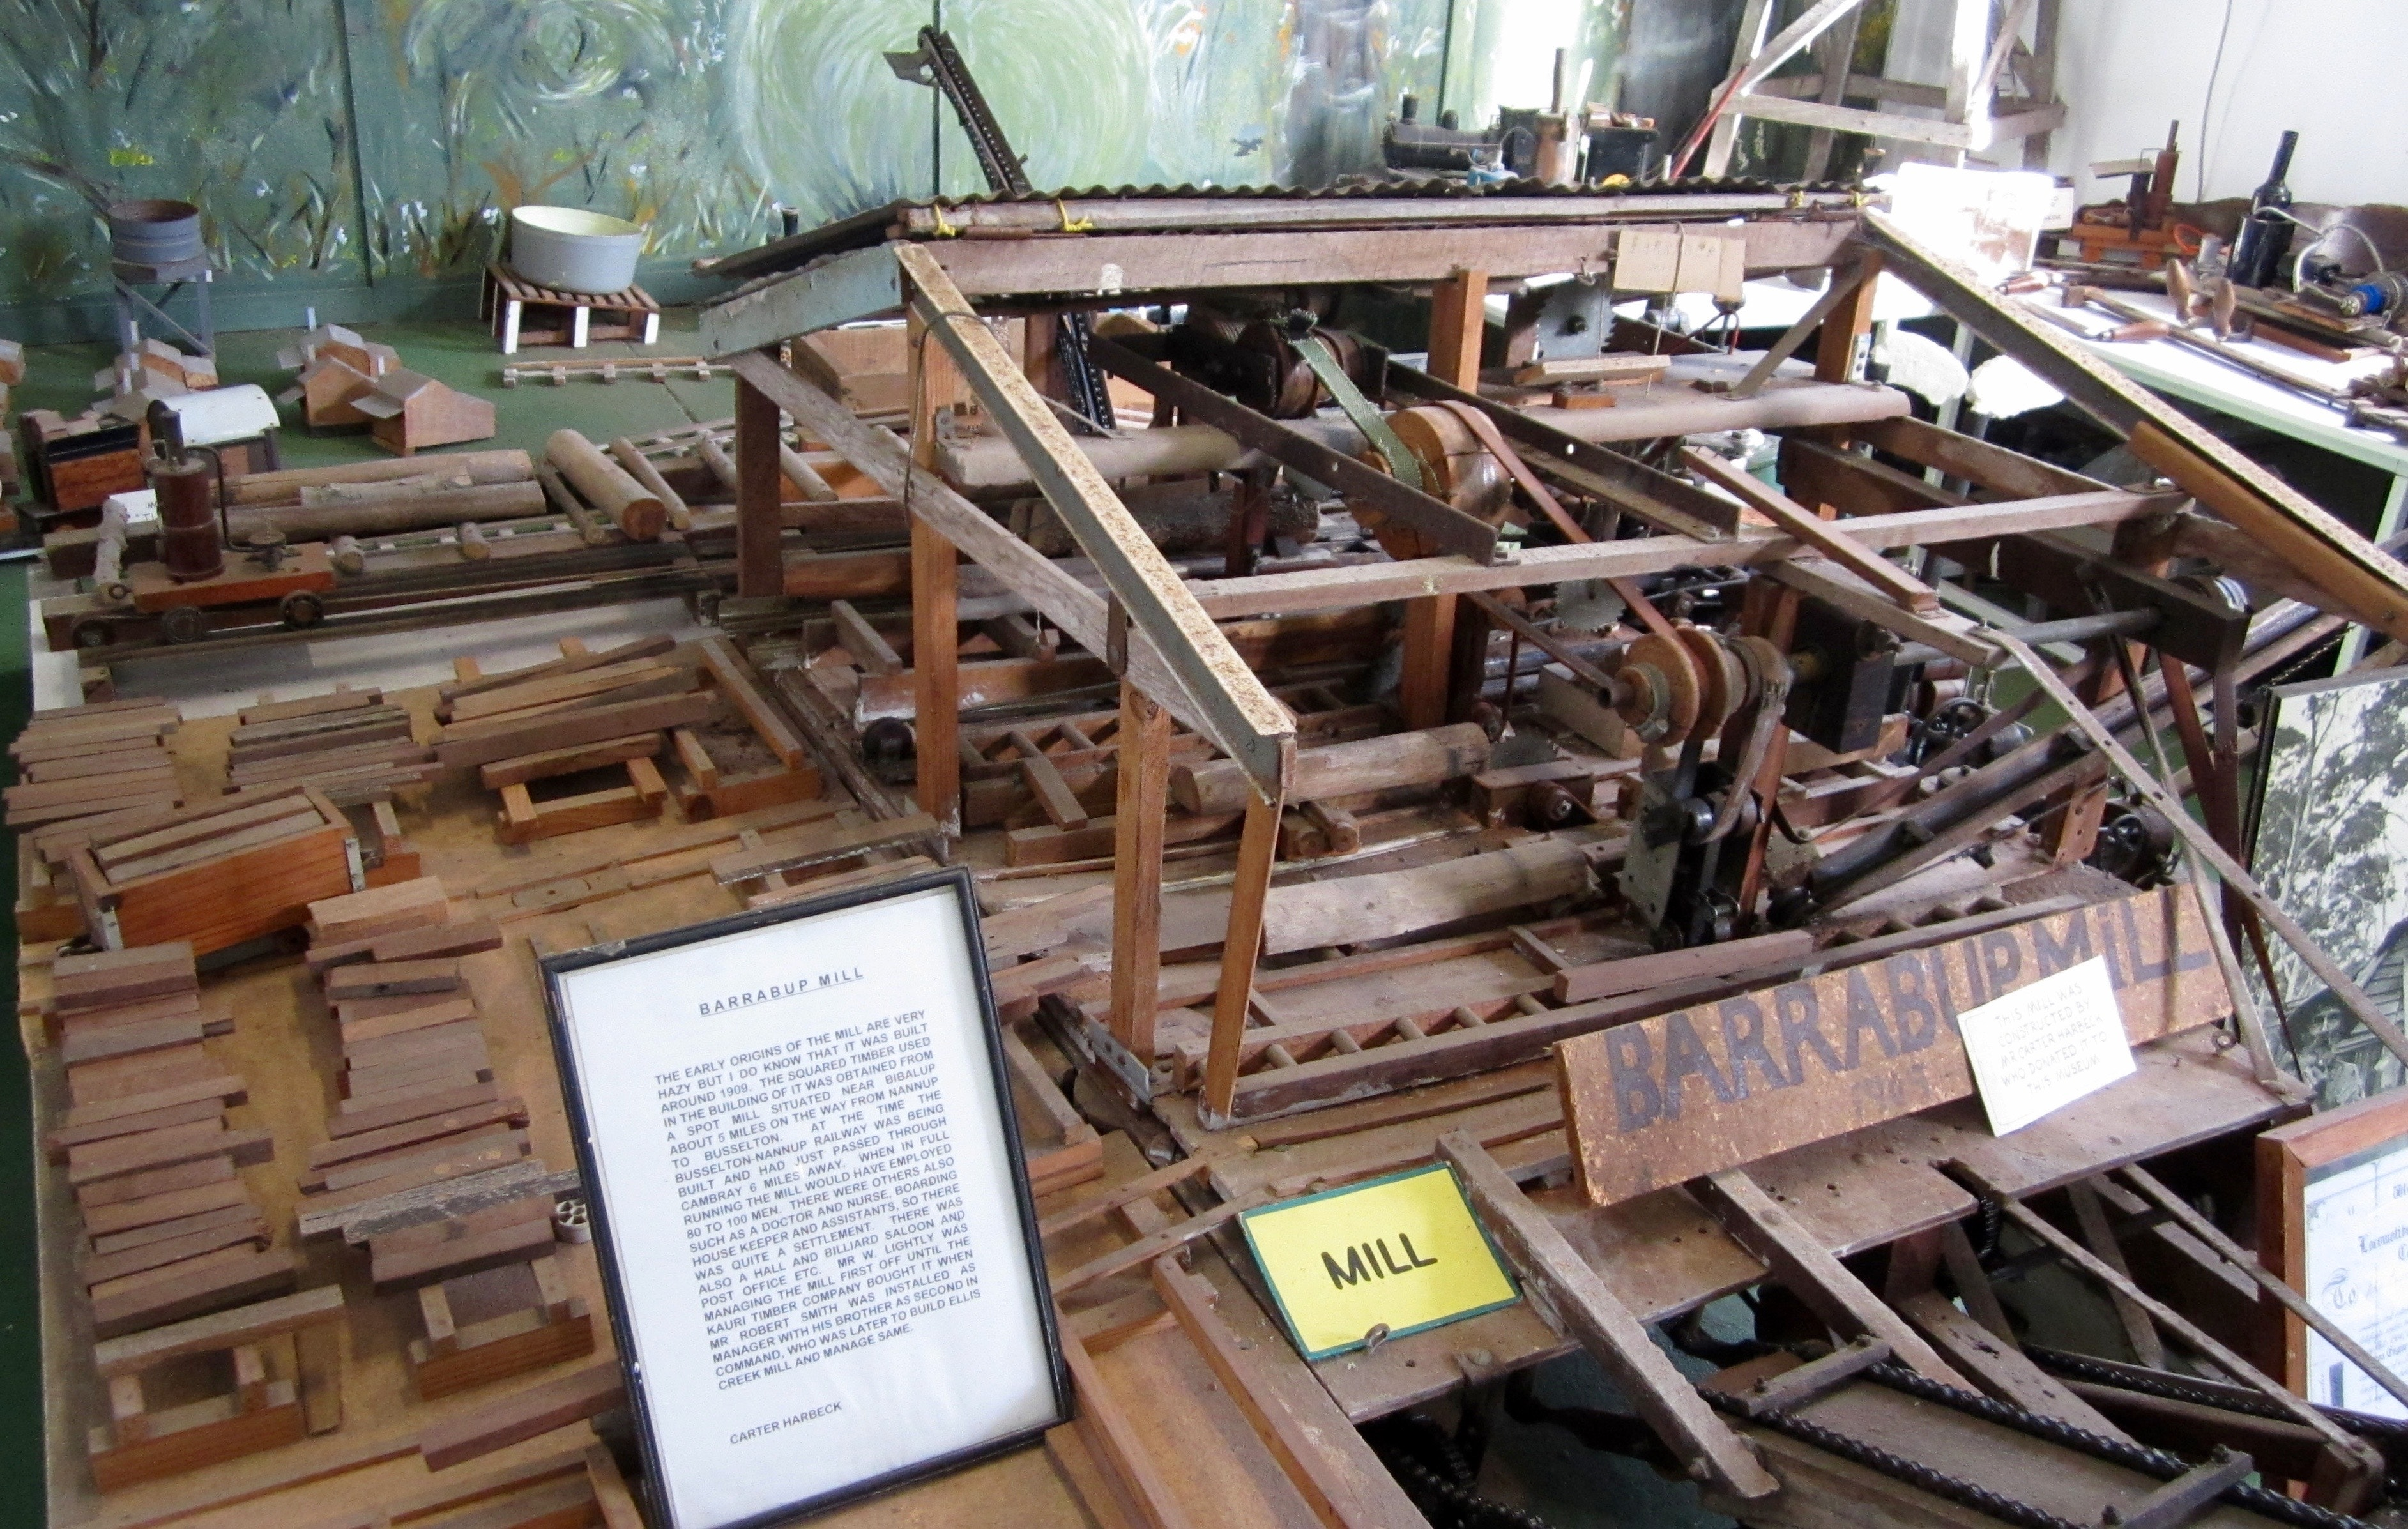 Model of Barrabup Mill at Busselton museum